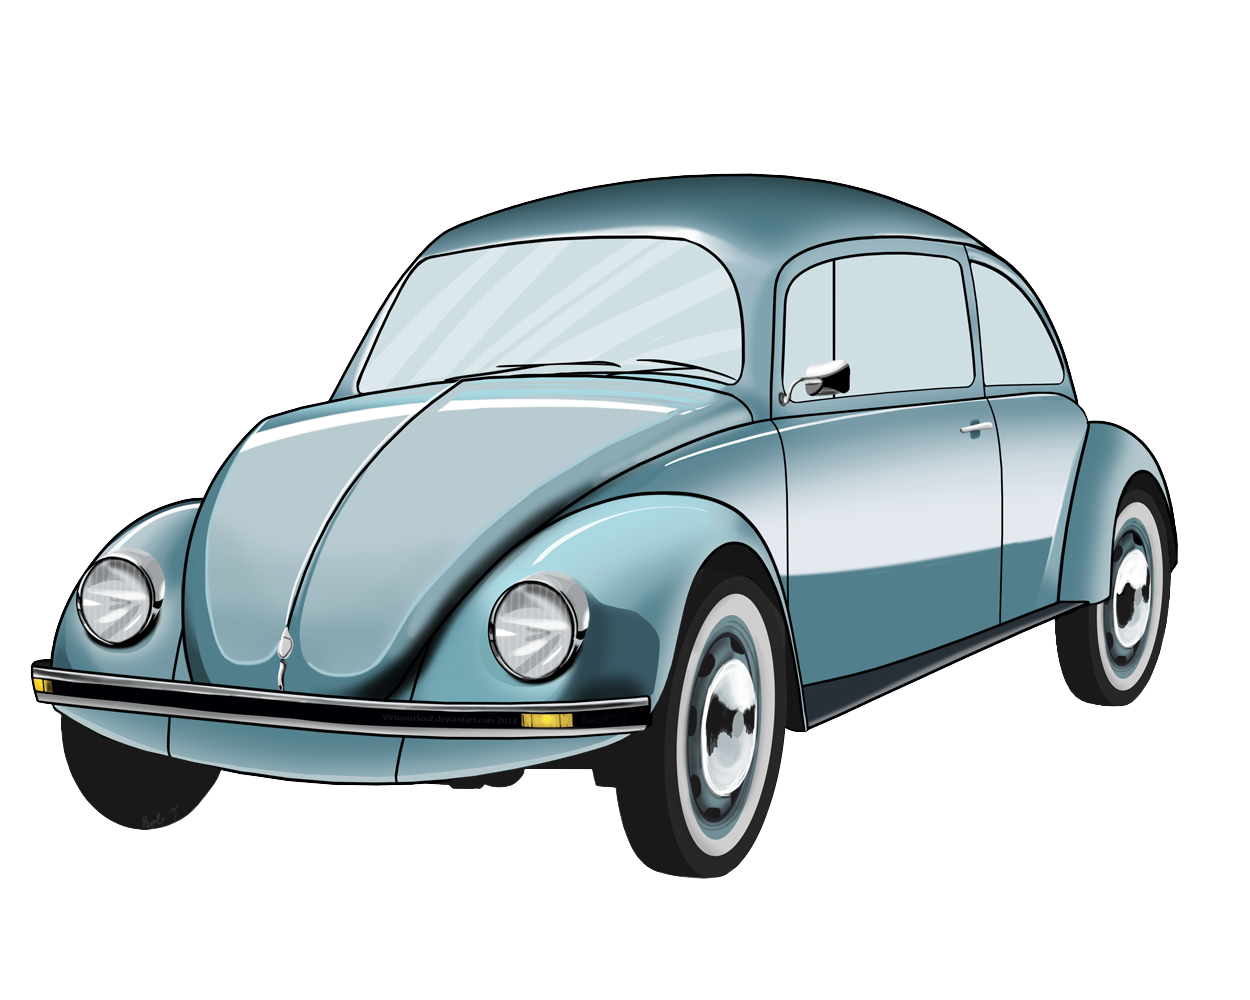 Vw bug craft ideas. Mustang clipart oto